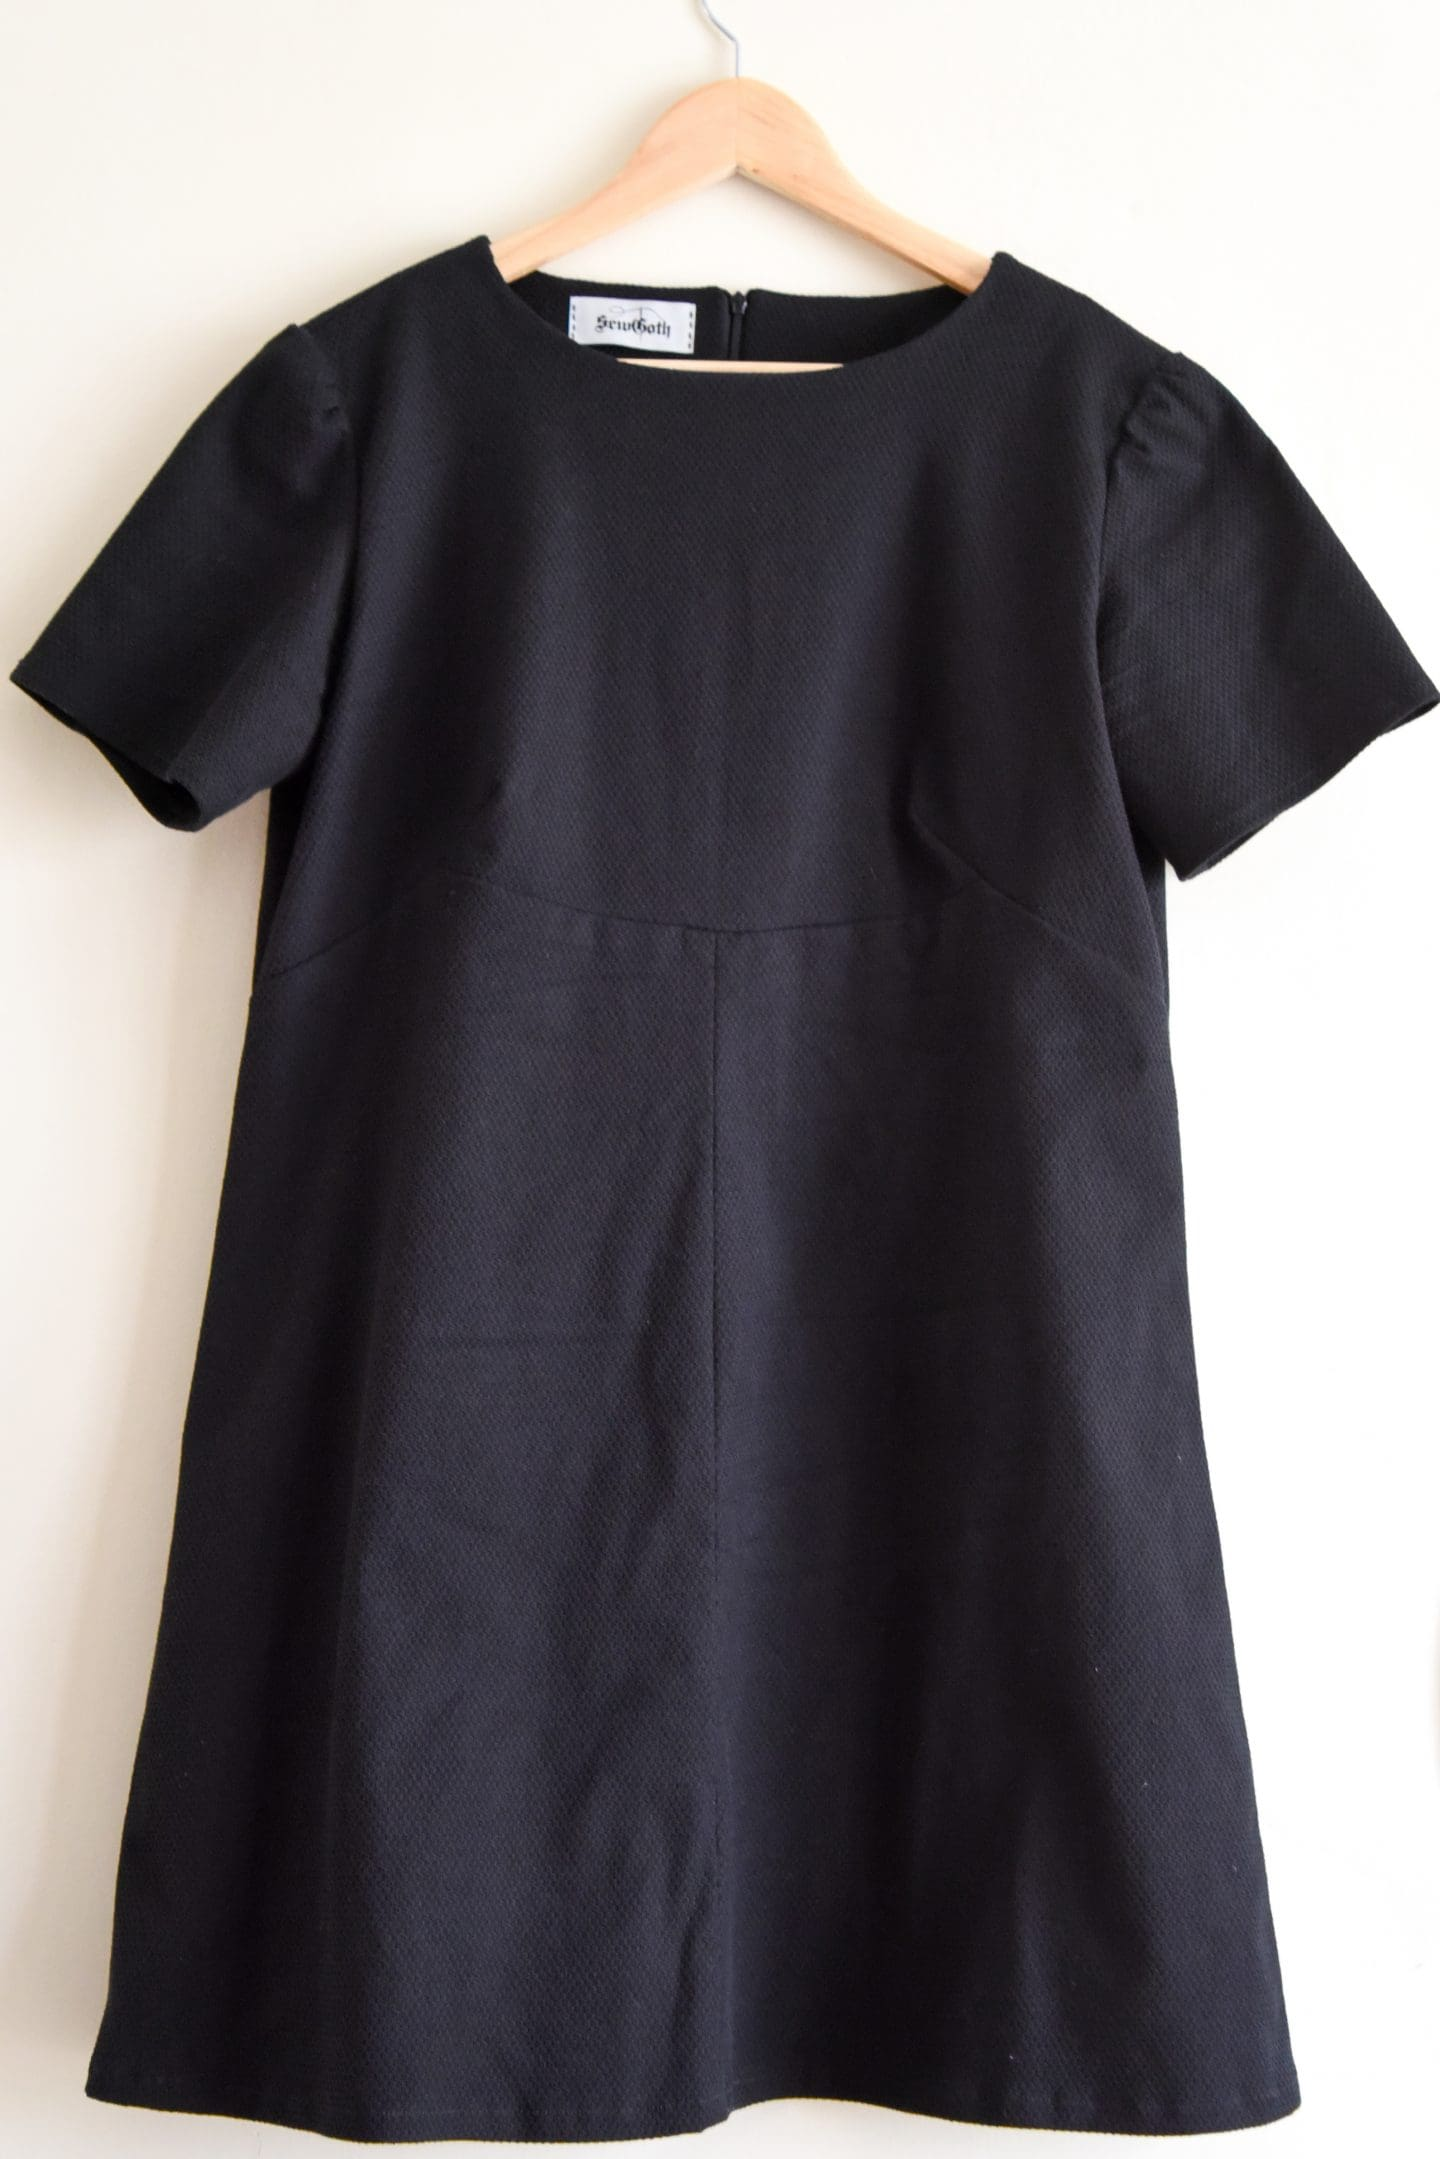 Image of the finished dress on a hanger